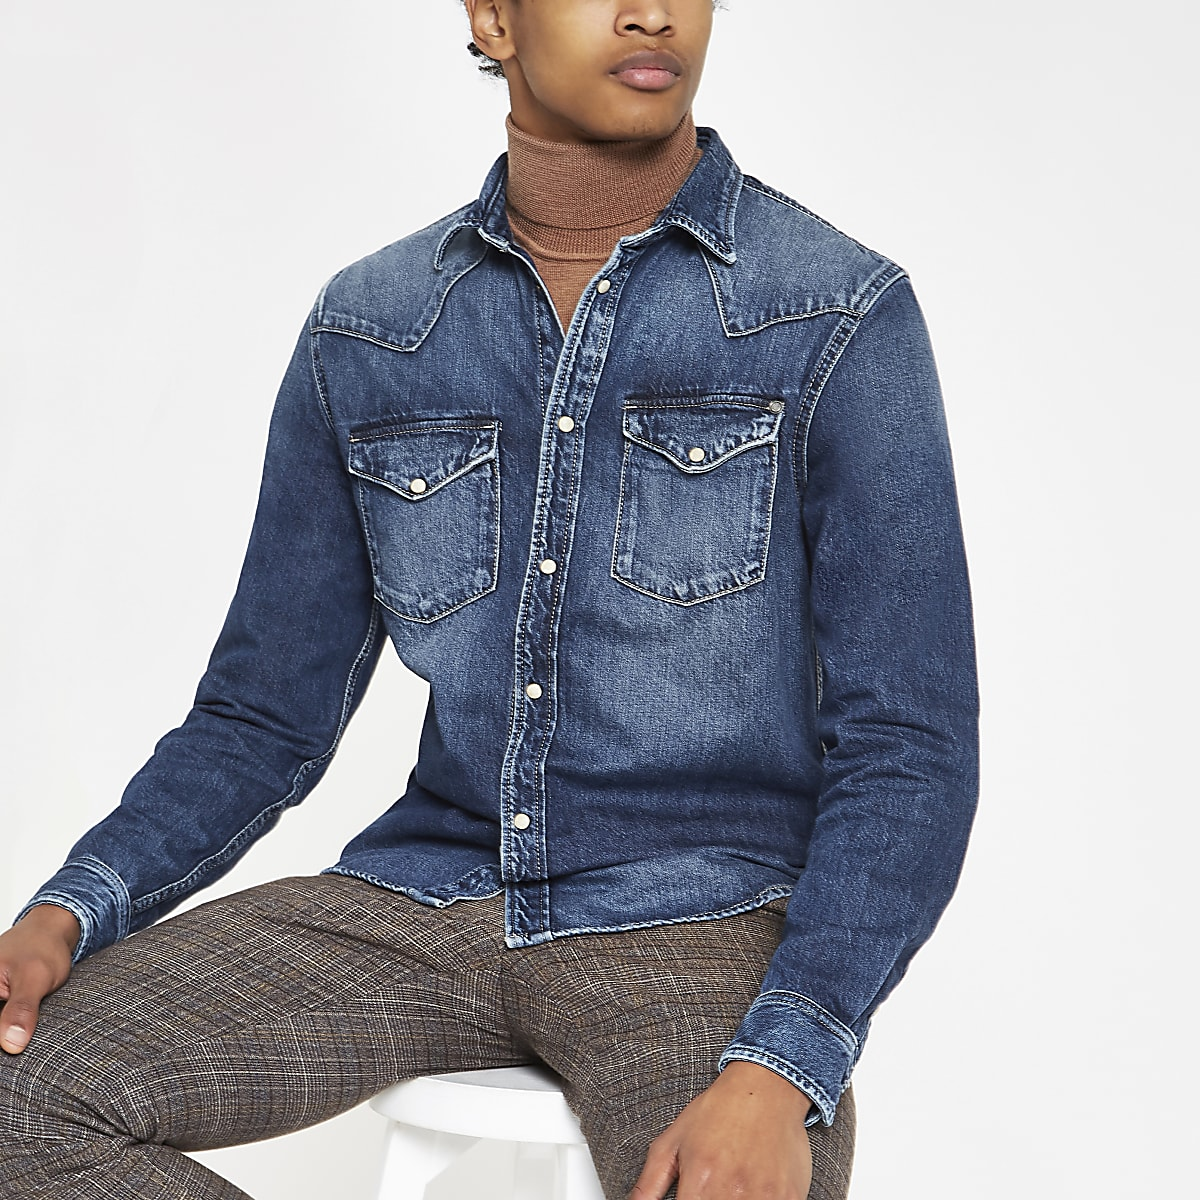 Pepe Jeans blue long sleeve denim shirt